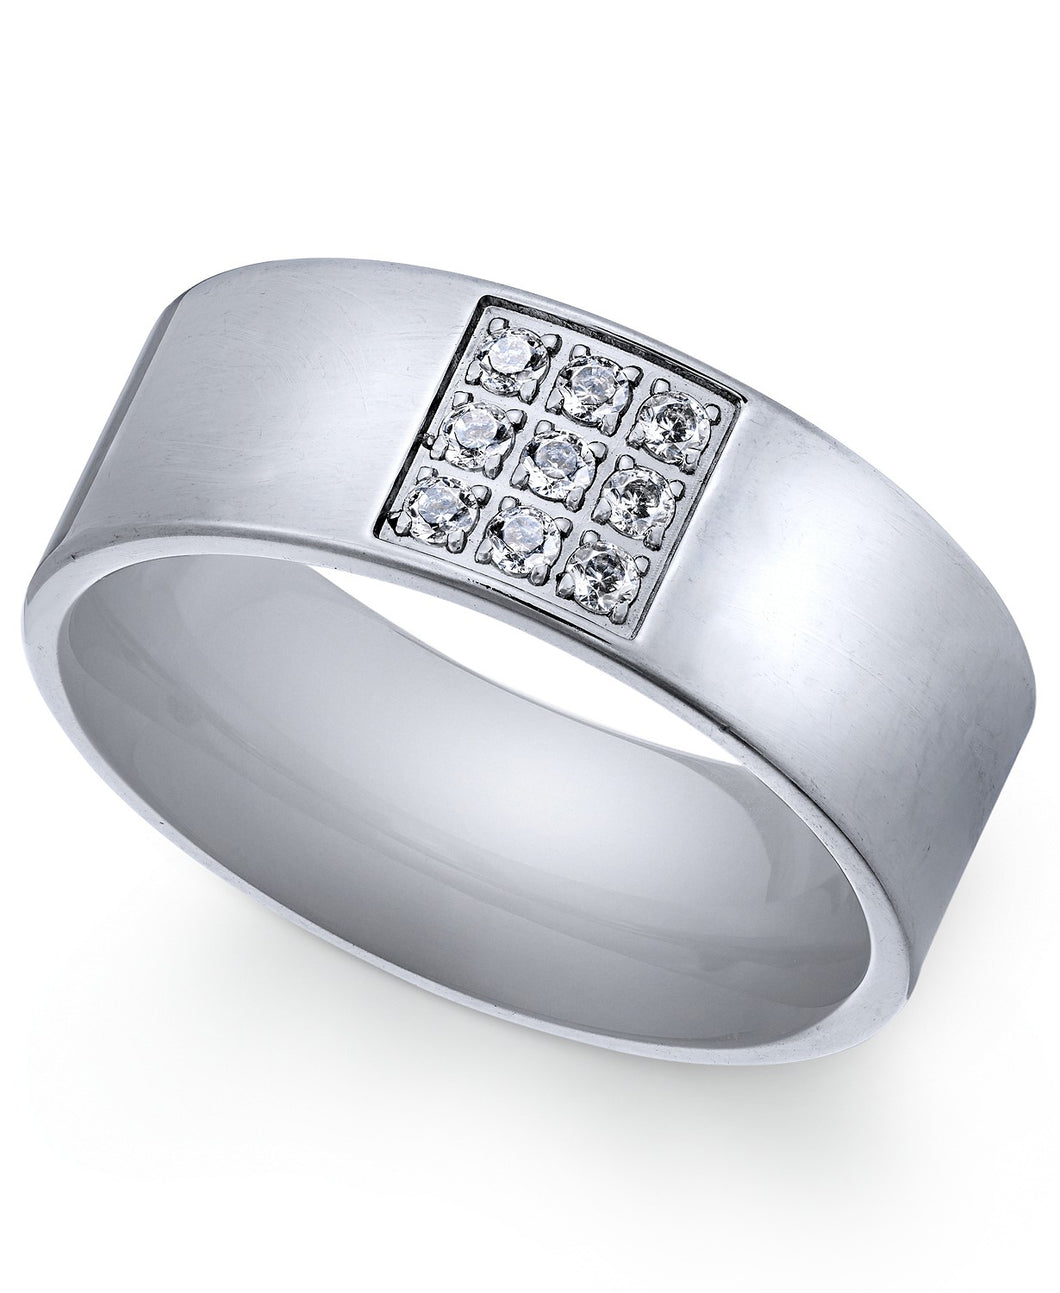 Men's Stainless Steel Cubic Zirconia Ring